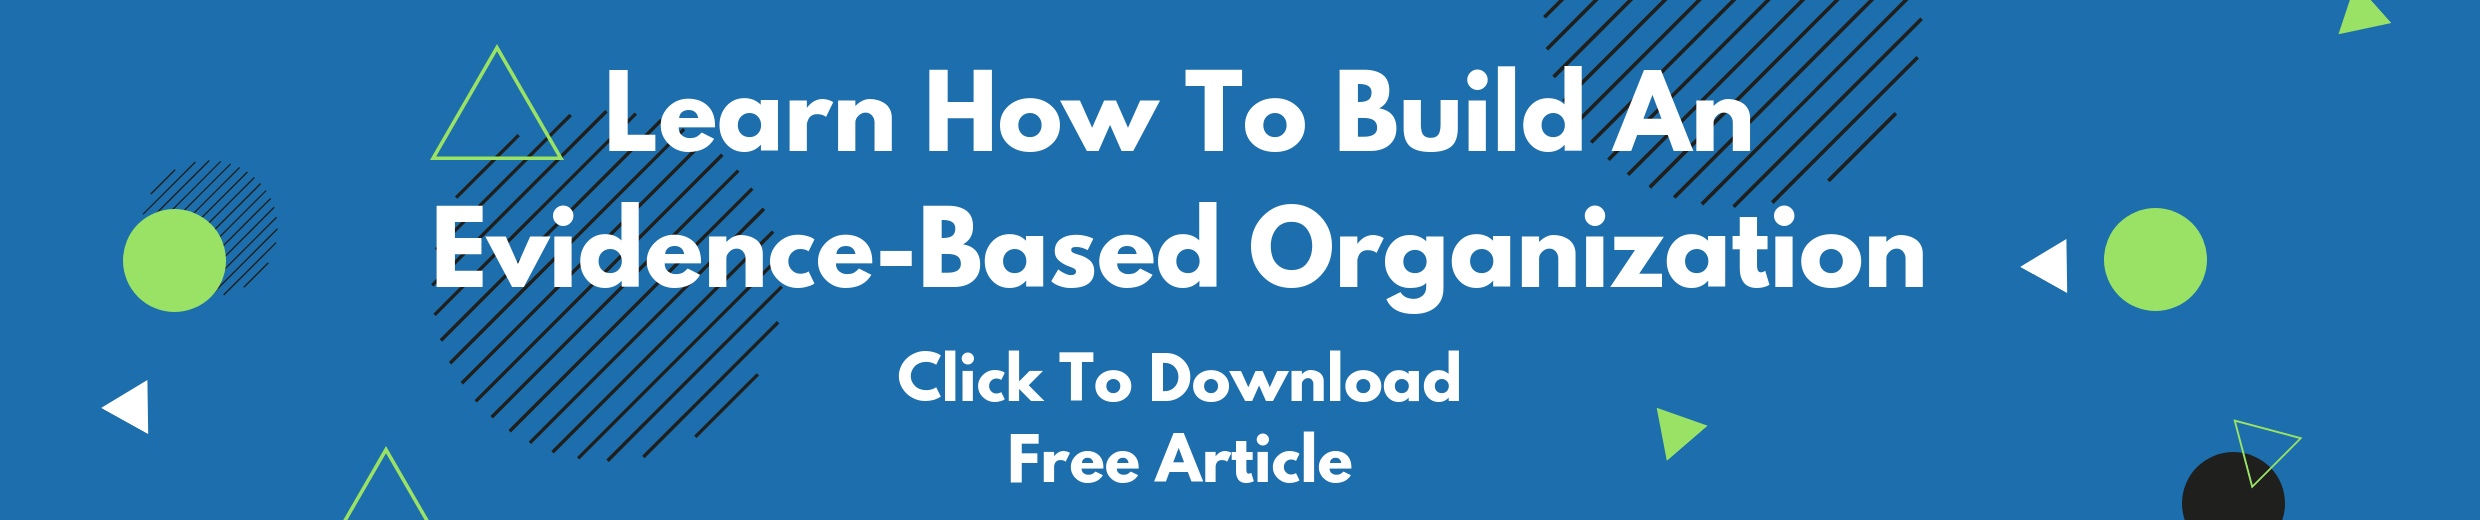 Evidence Based Organization Free Article